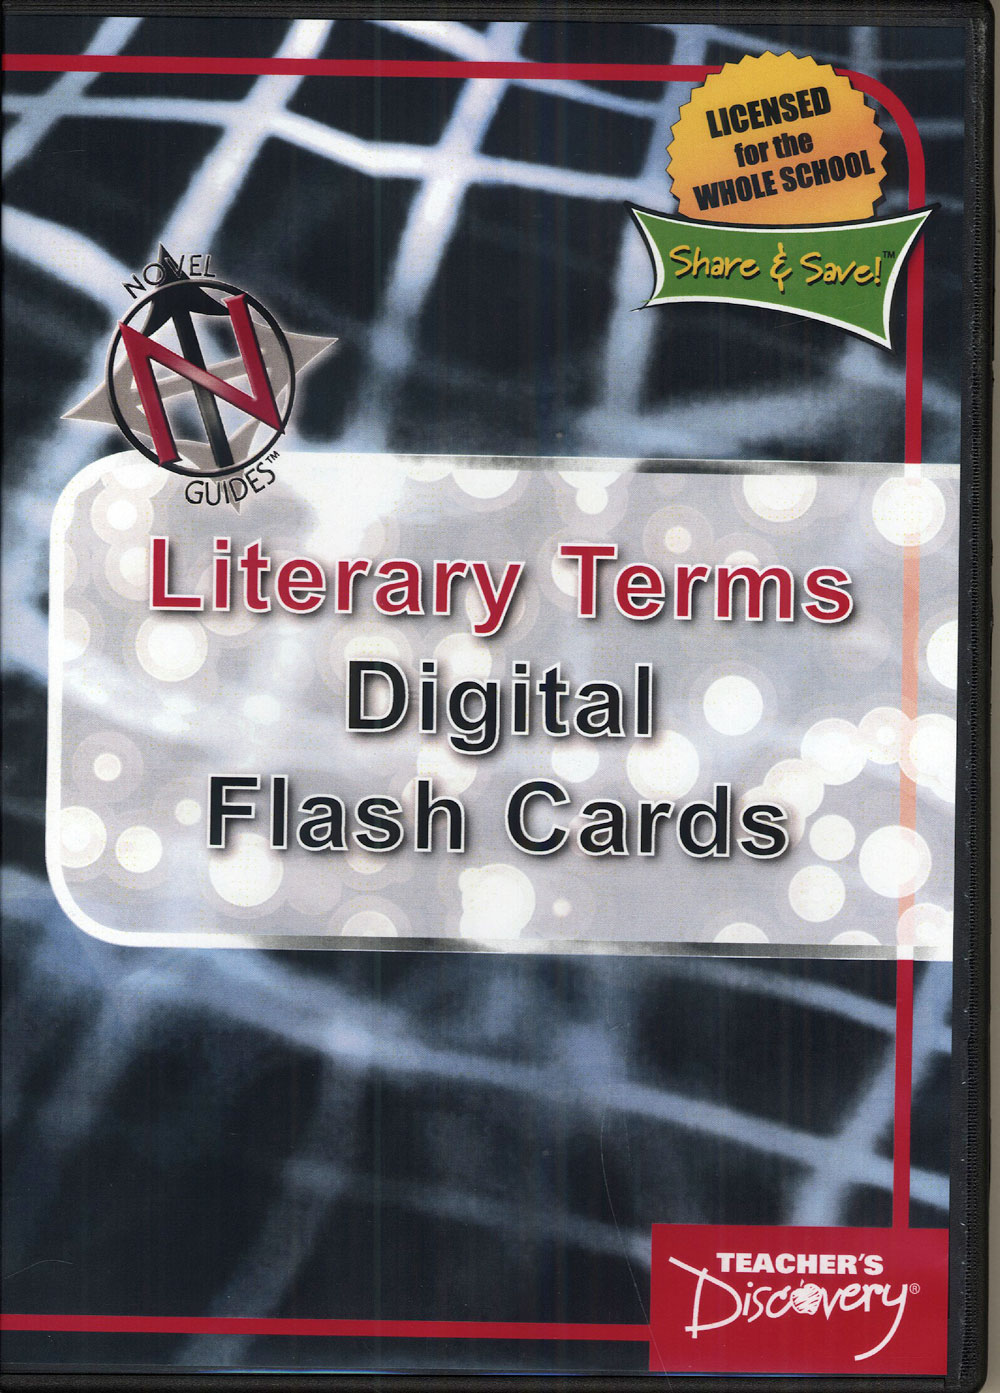 Novel Guide Literary Terms Digital Flash Cards